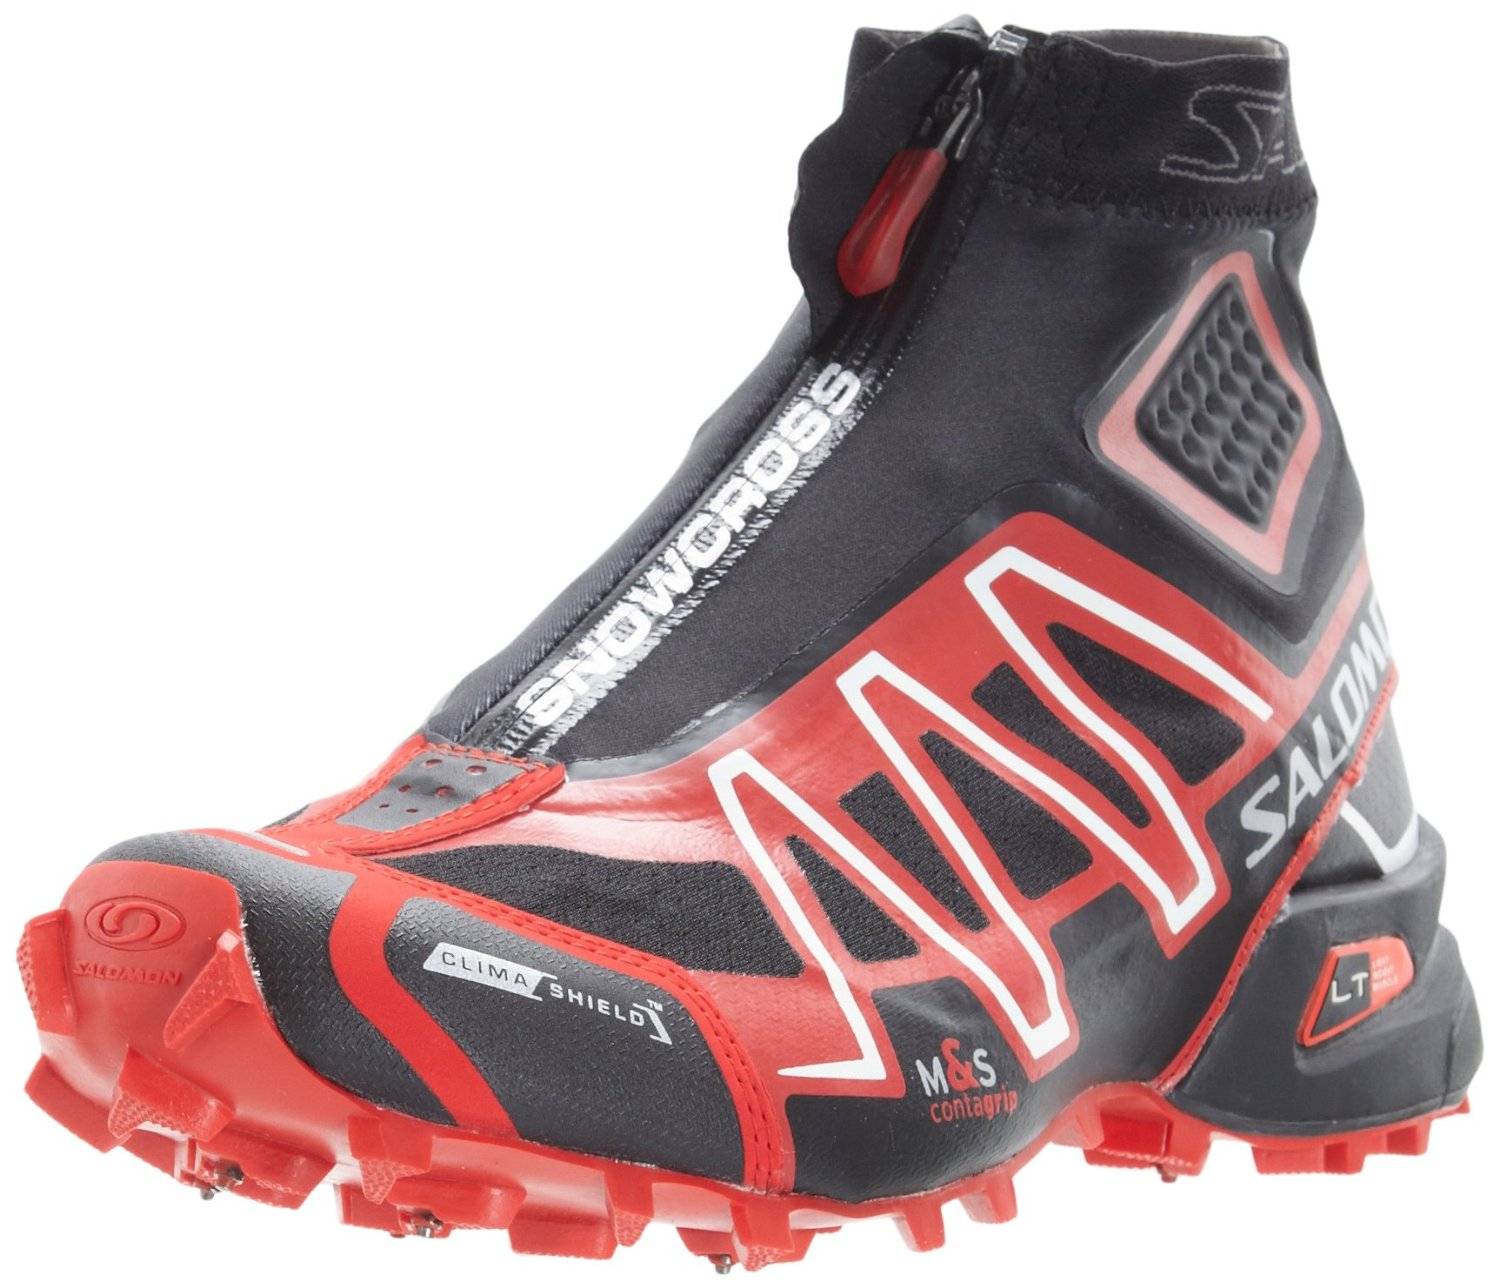 Salomon Winter Running Shoes Review